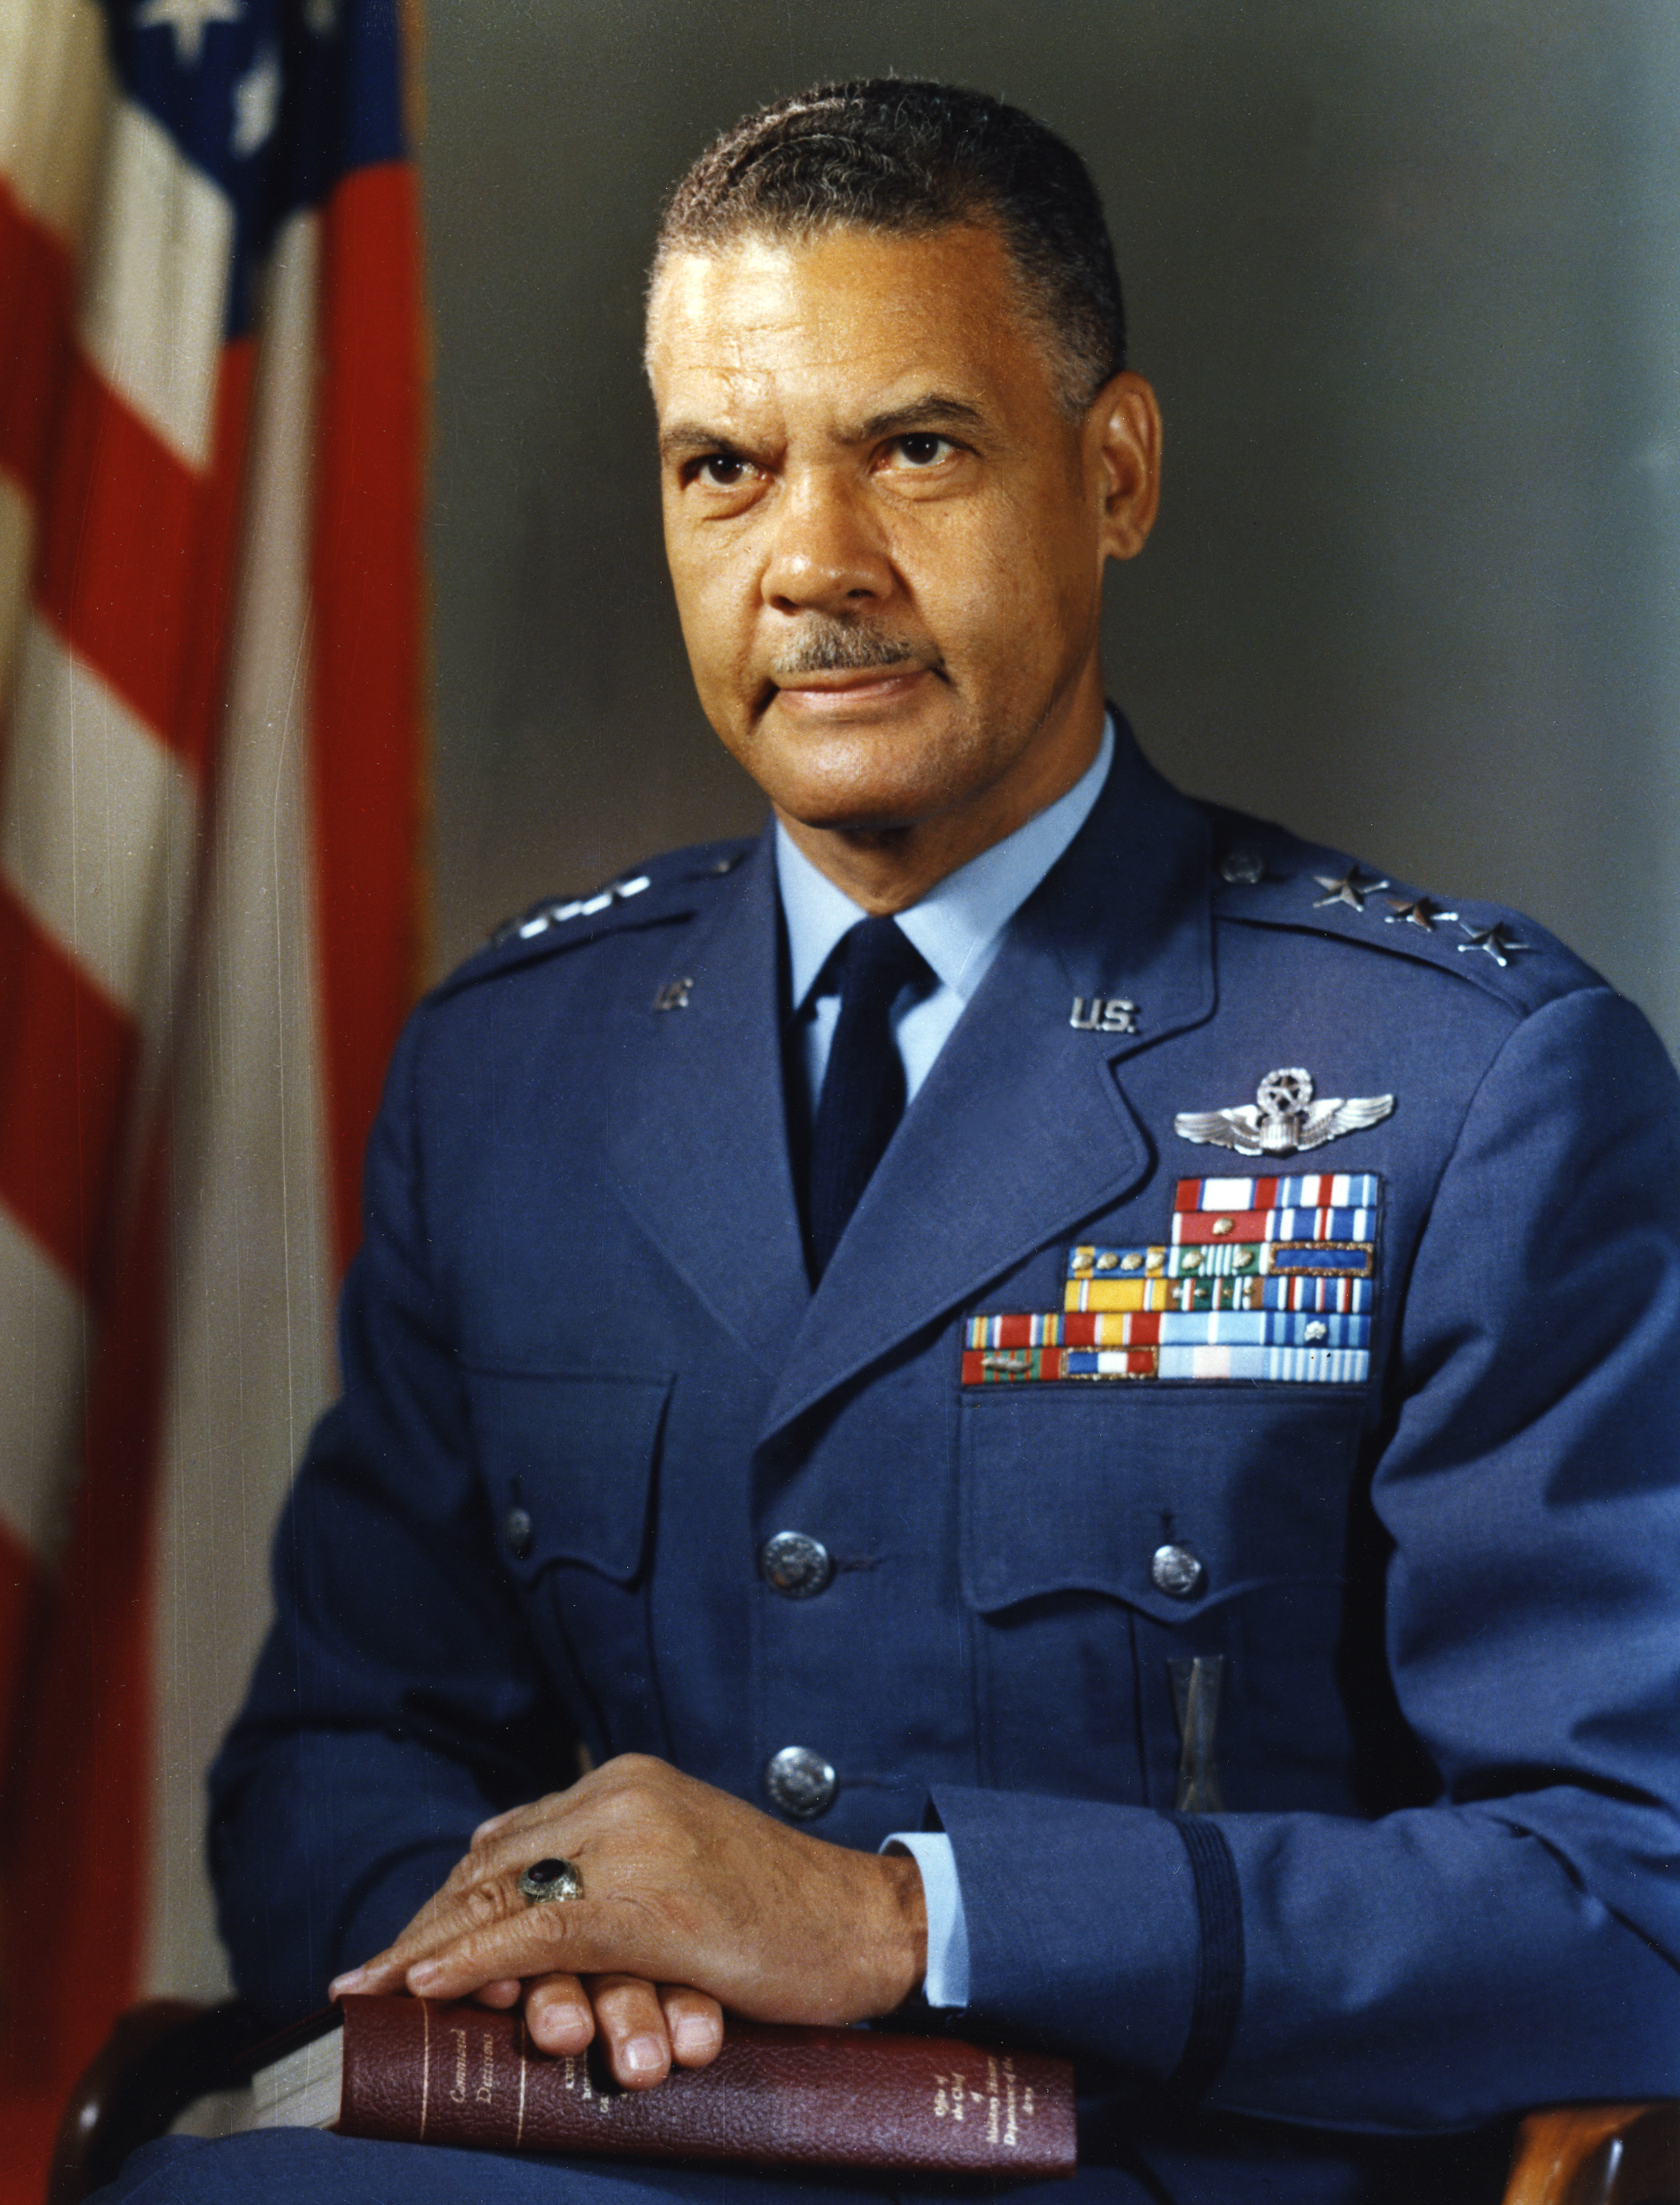 West Point barracks to honor Tuskegee Airmen leader